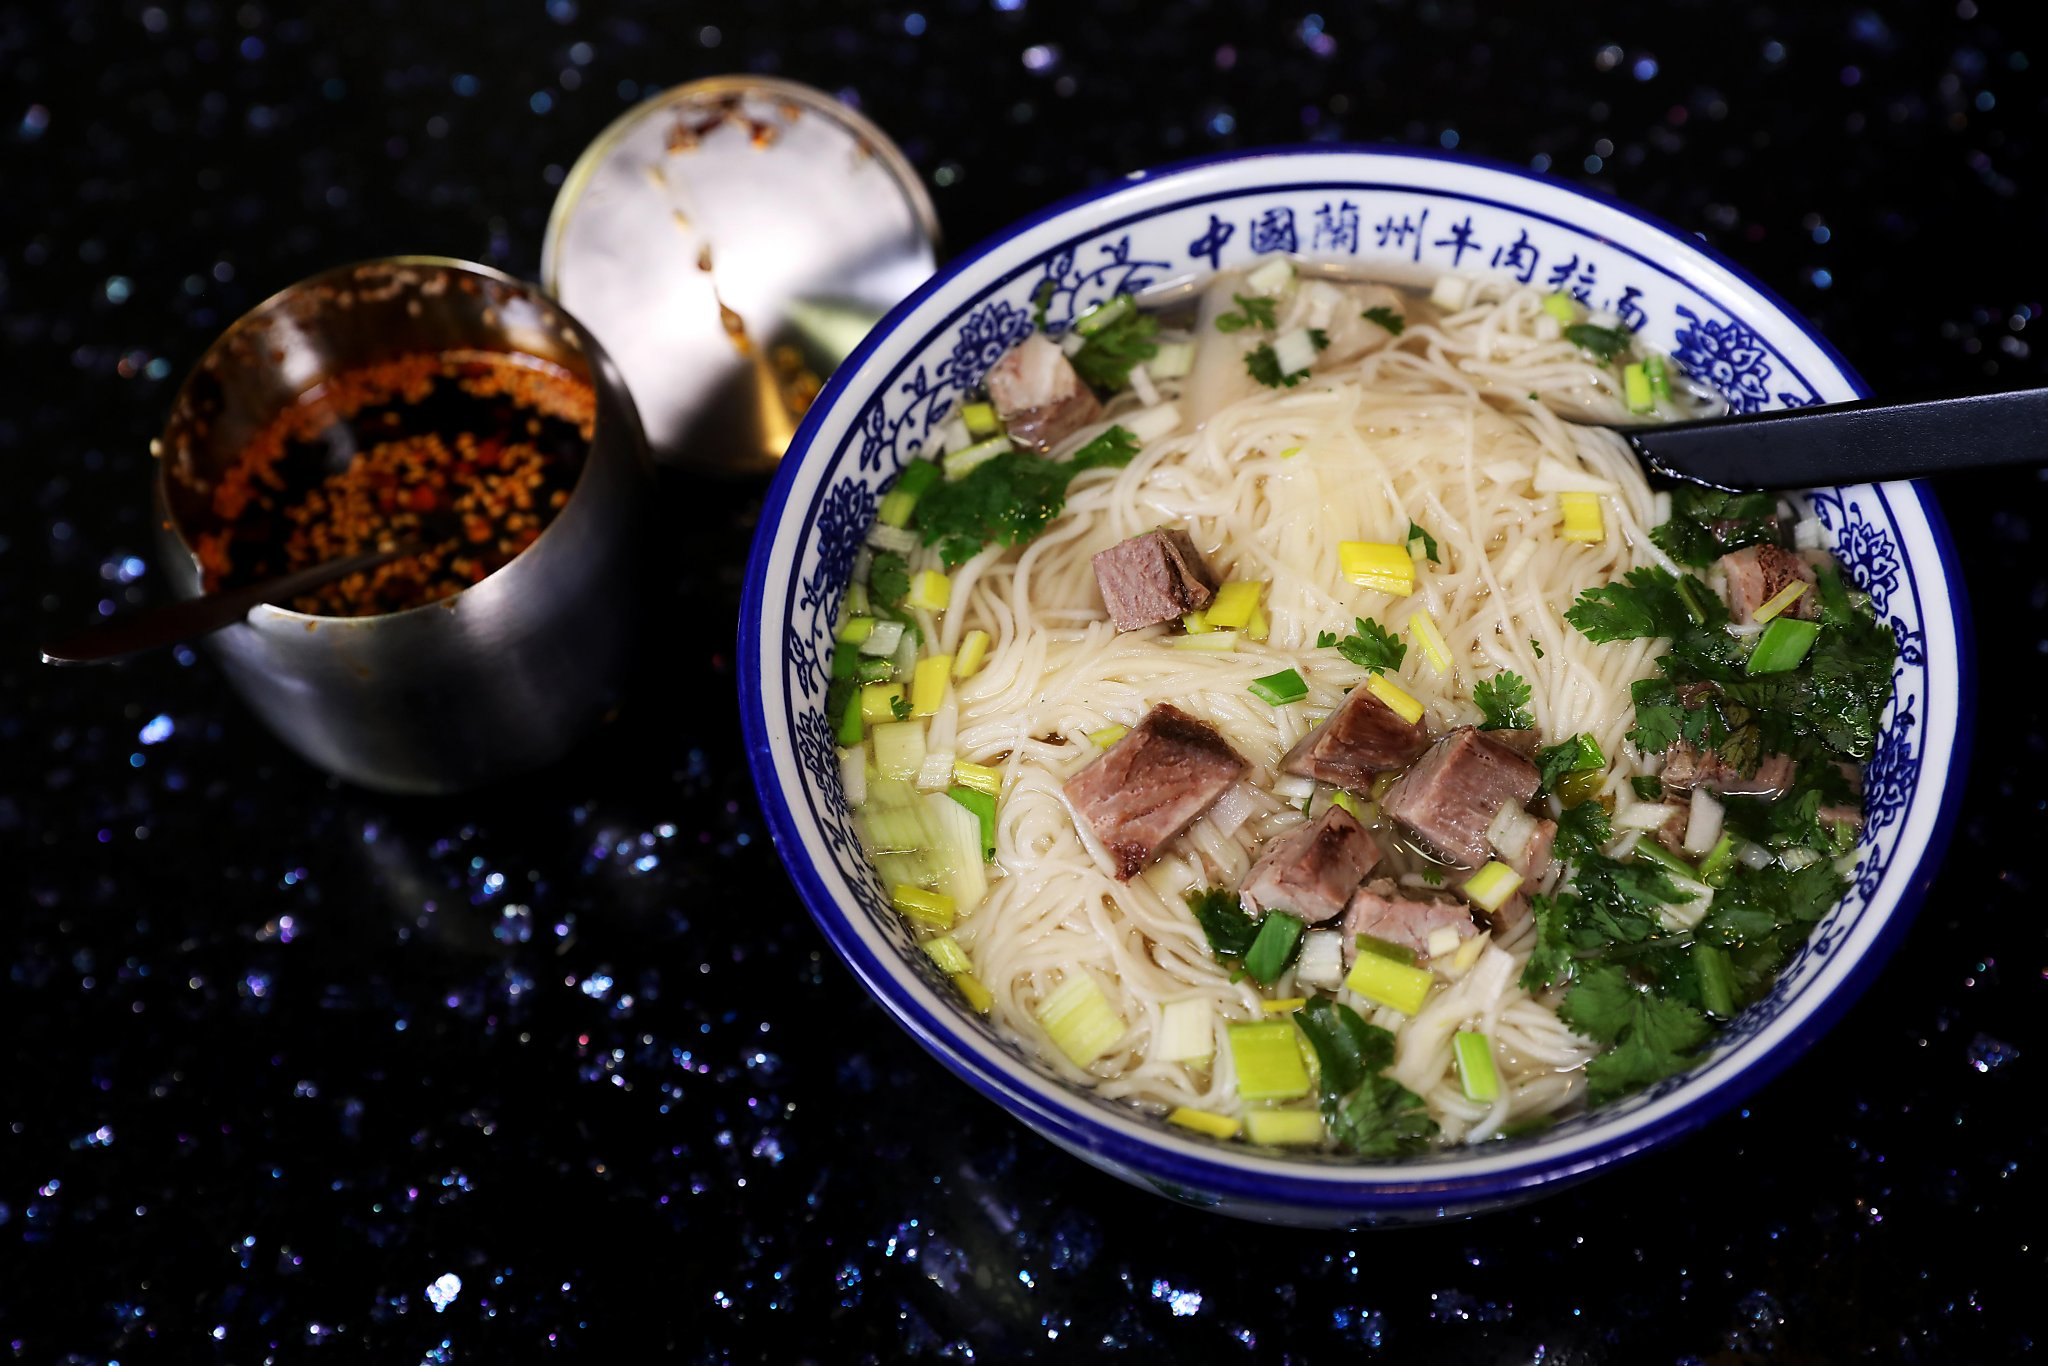 Fremont S Shinry Lamian Serves Lanzhou Noodles Made By A Master Noodle Puller Sfchronicle Com